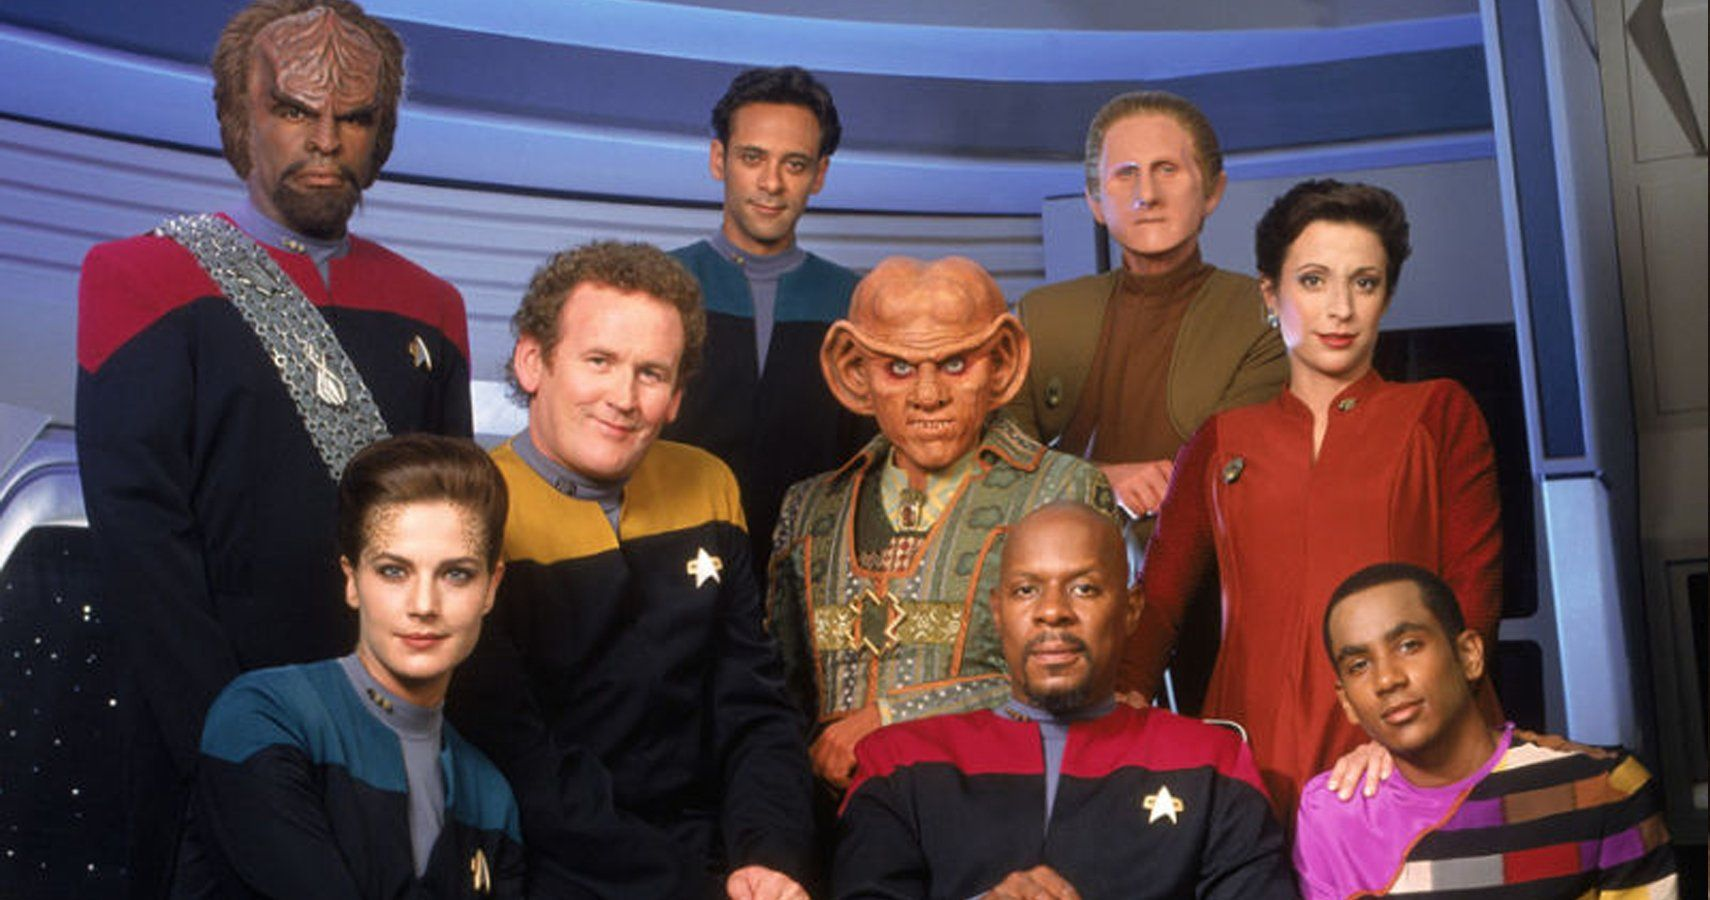 Star Trek: The 10 Worst Episodes Of DS9 Ever, According To IMDb